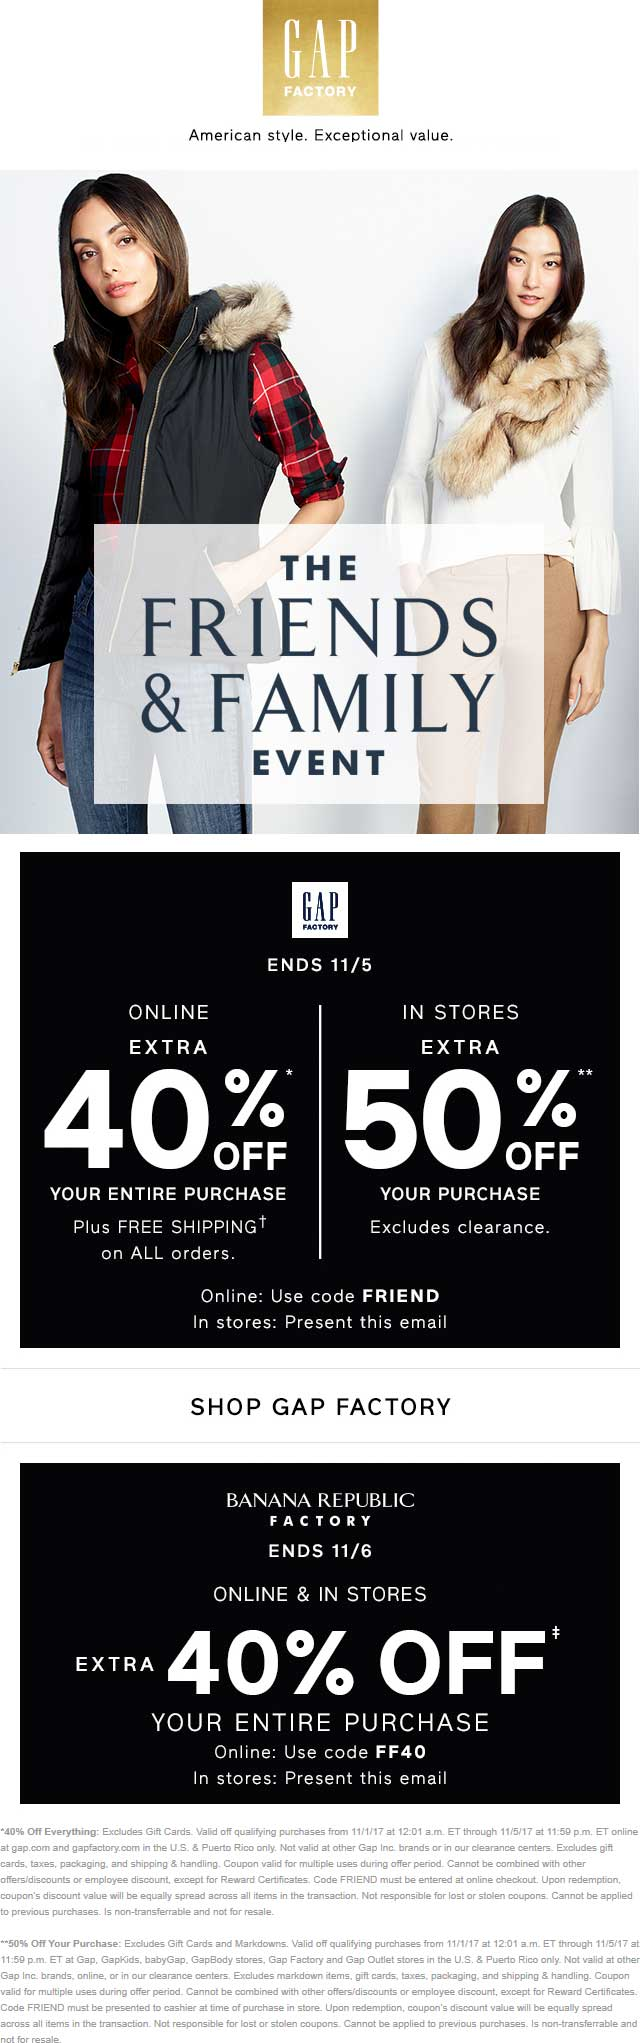 Gap.com Promo Coupon 50% off today at Gap, GapKids, babyGap, GapBody stores, Gap Factory and Gap Outlet, or online via promo code FRIEND